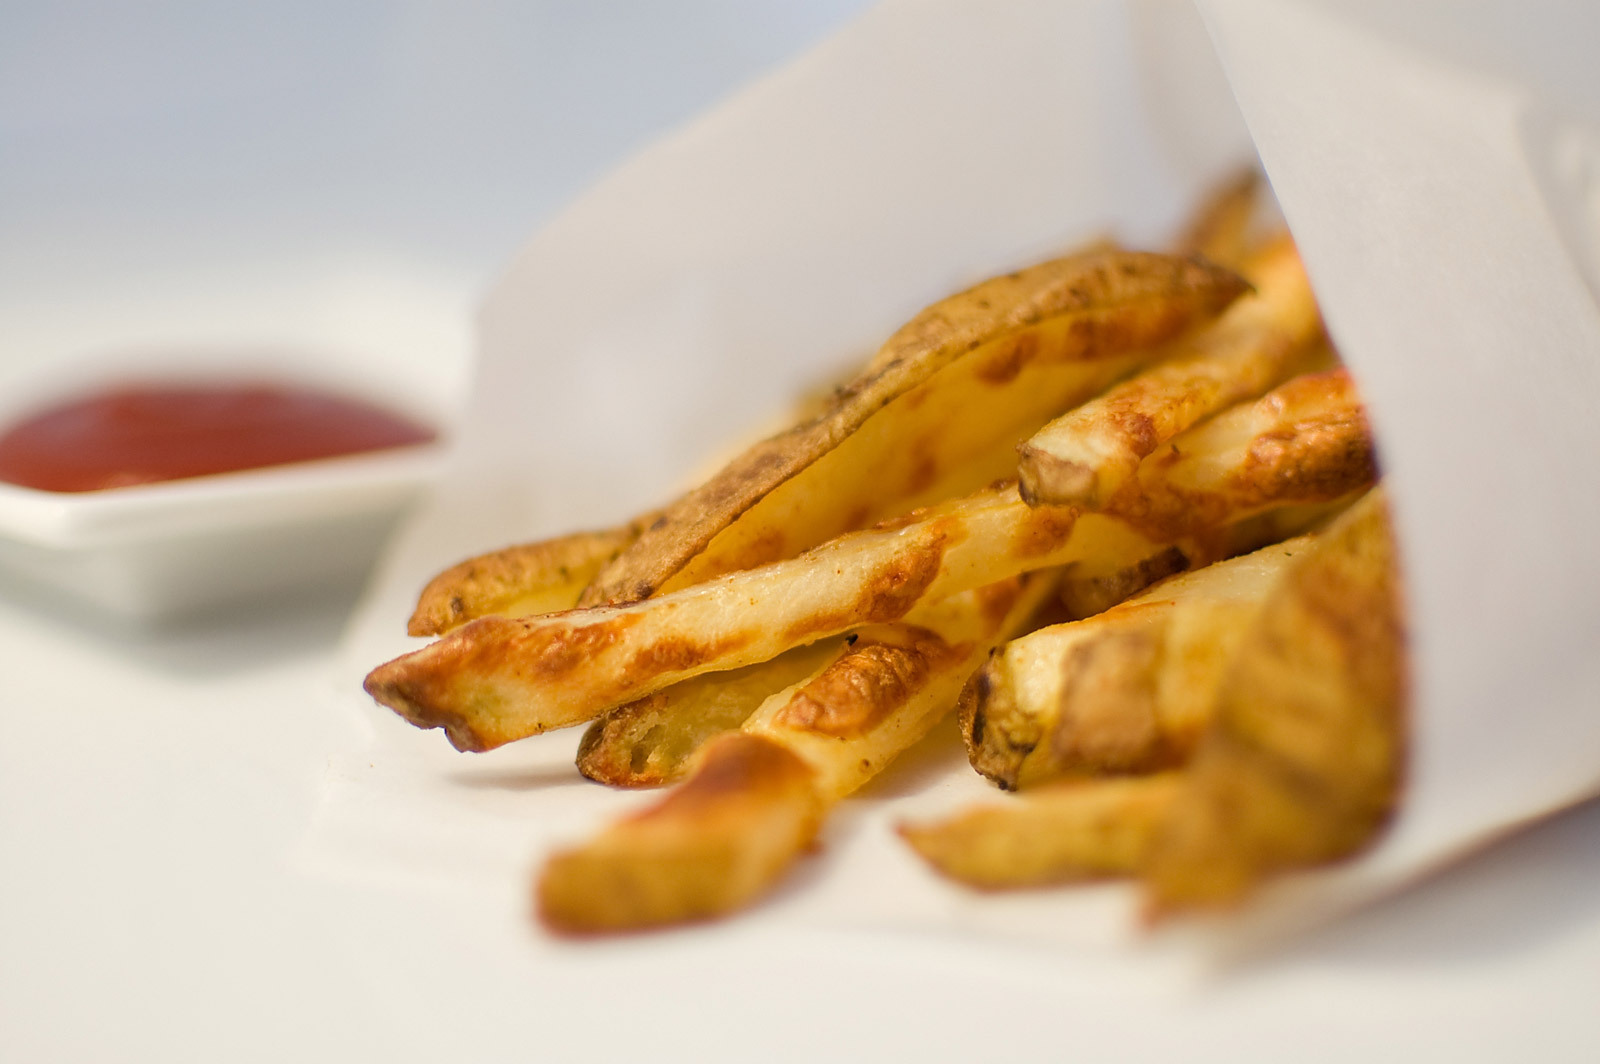 French Fries images Yummy HD wallpaper and background ...